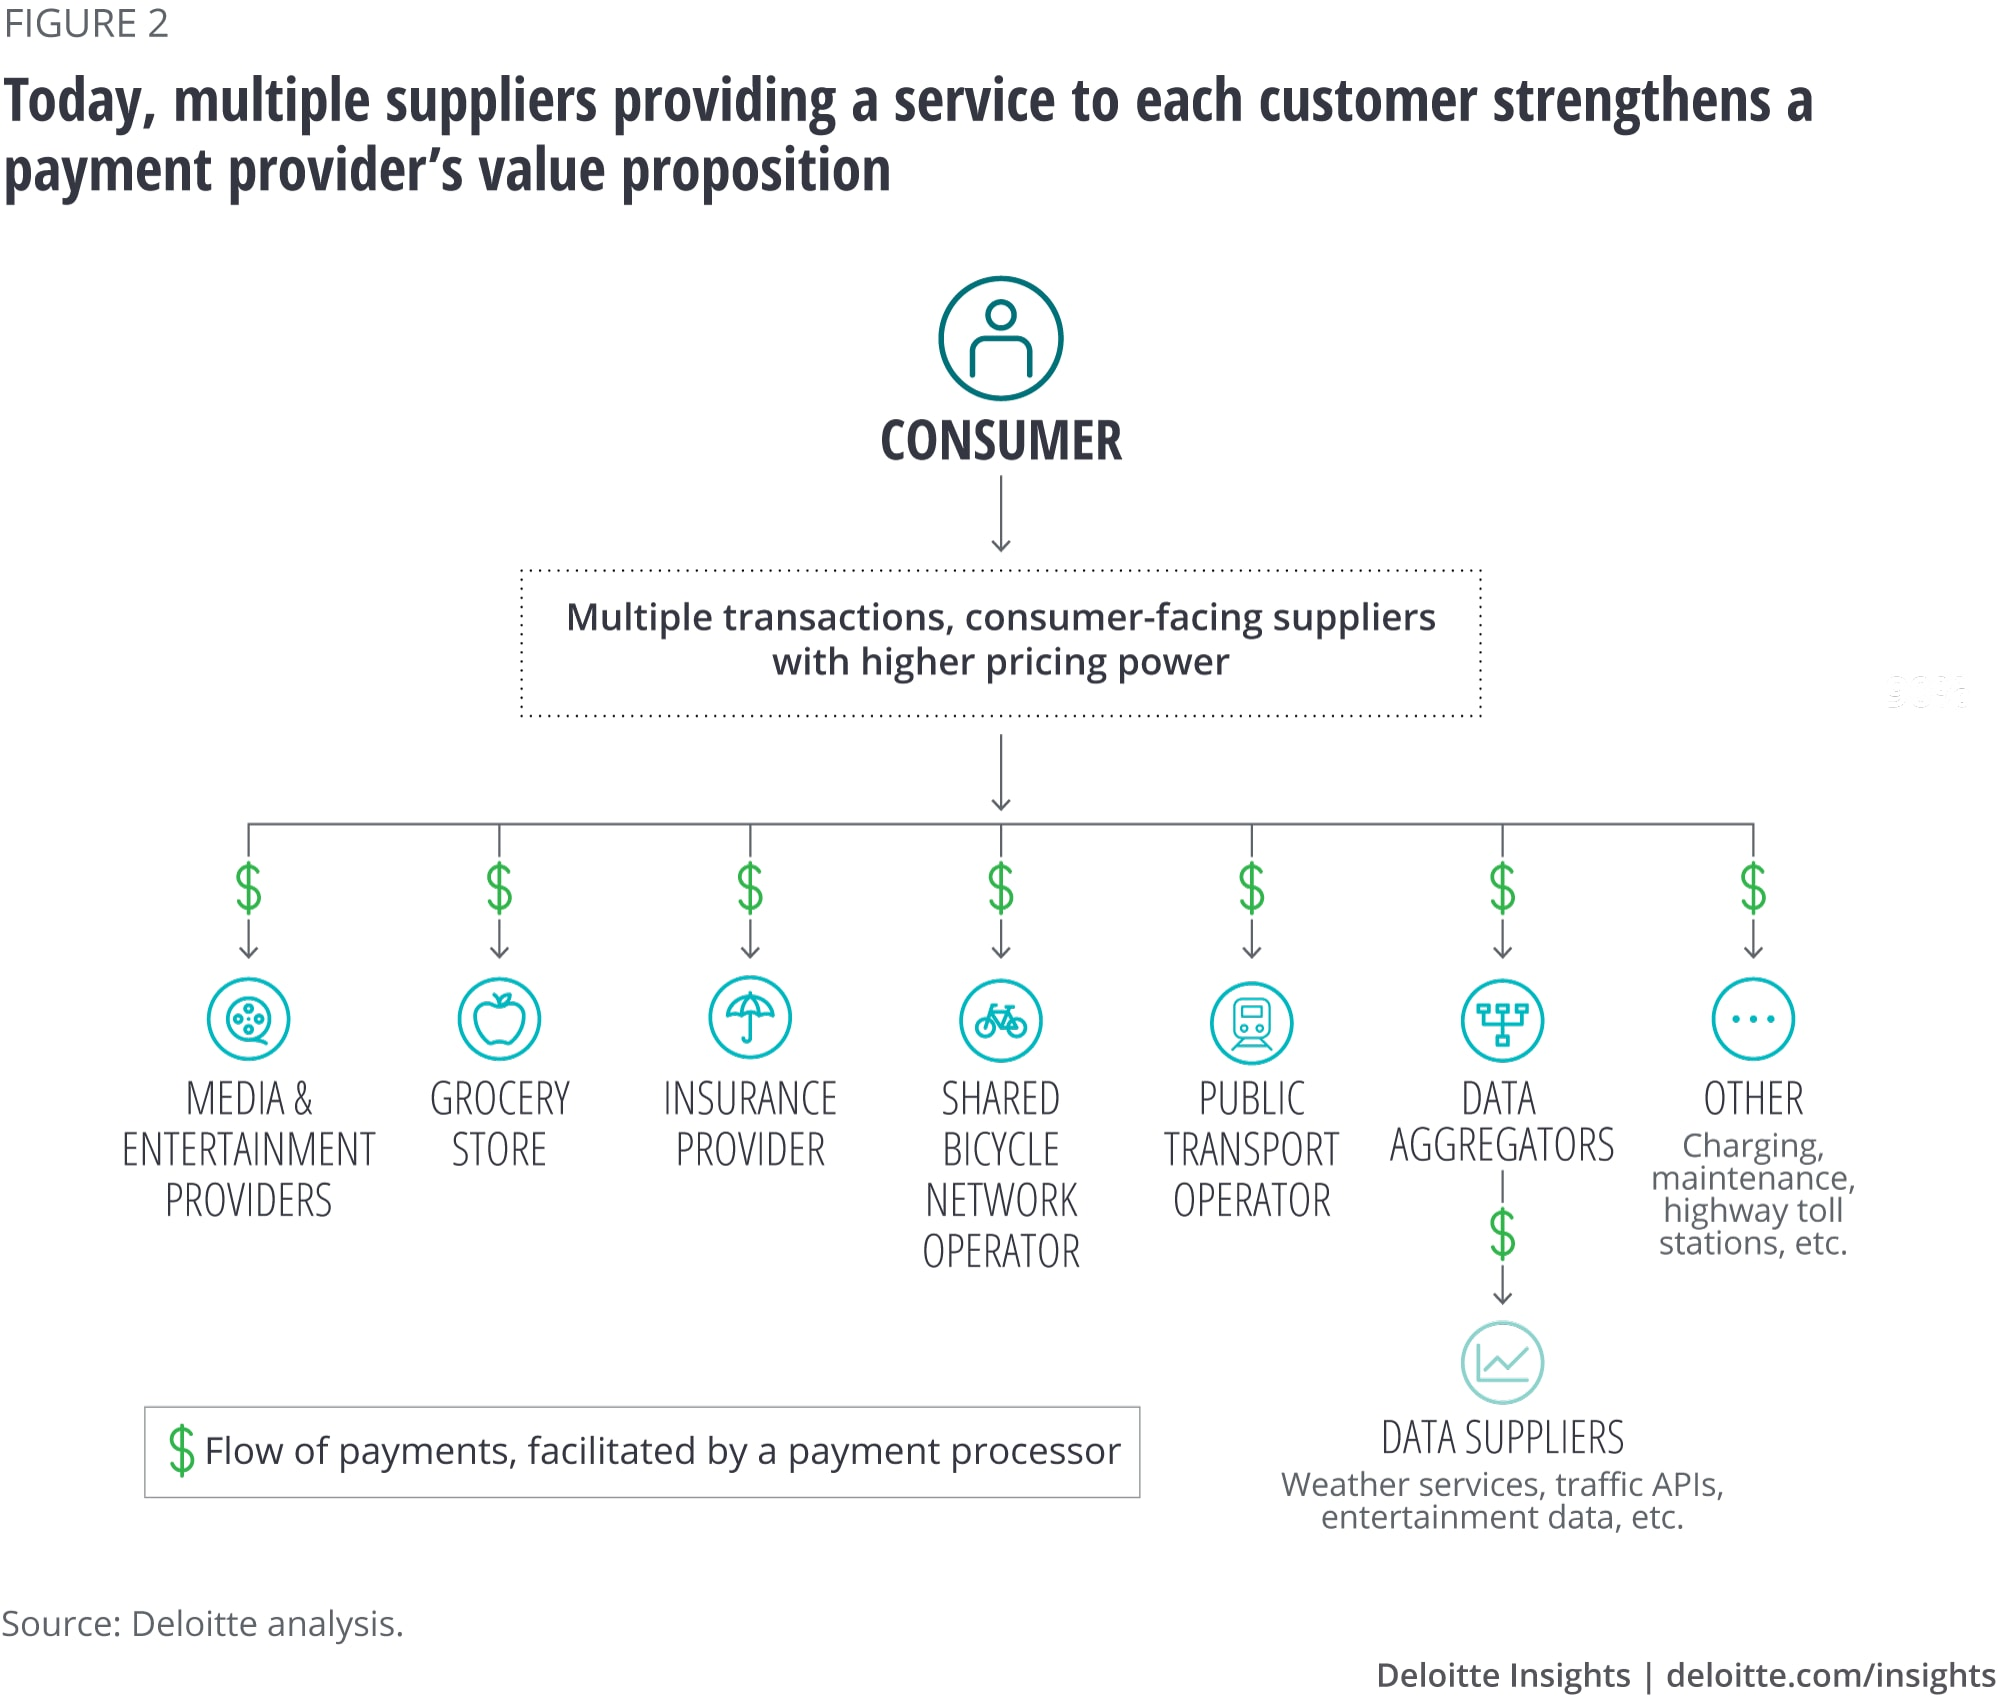 Today, multiple suppliers providing a service to each customer strengthens a payment provider's value proposition